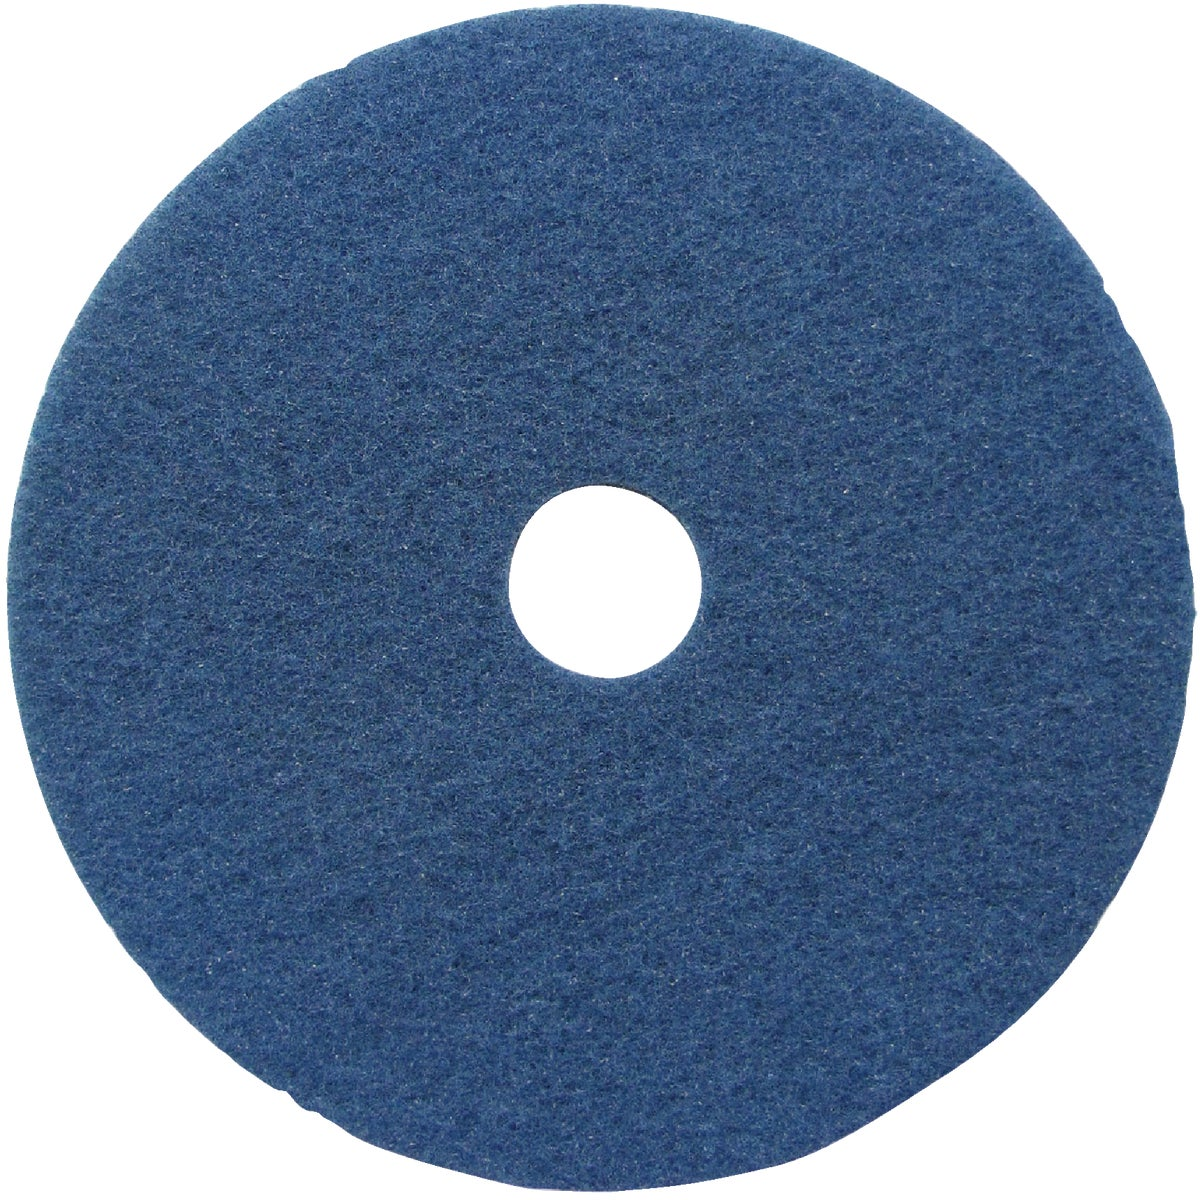 "20"" BLUE POLISH PAD"